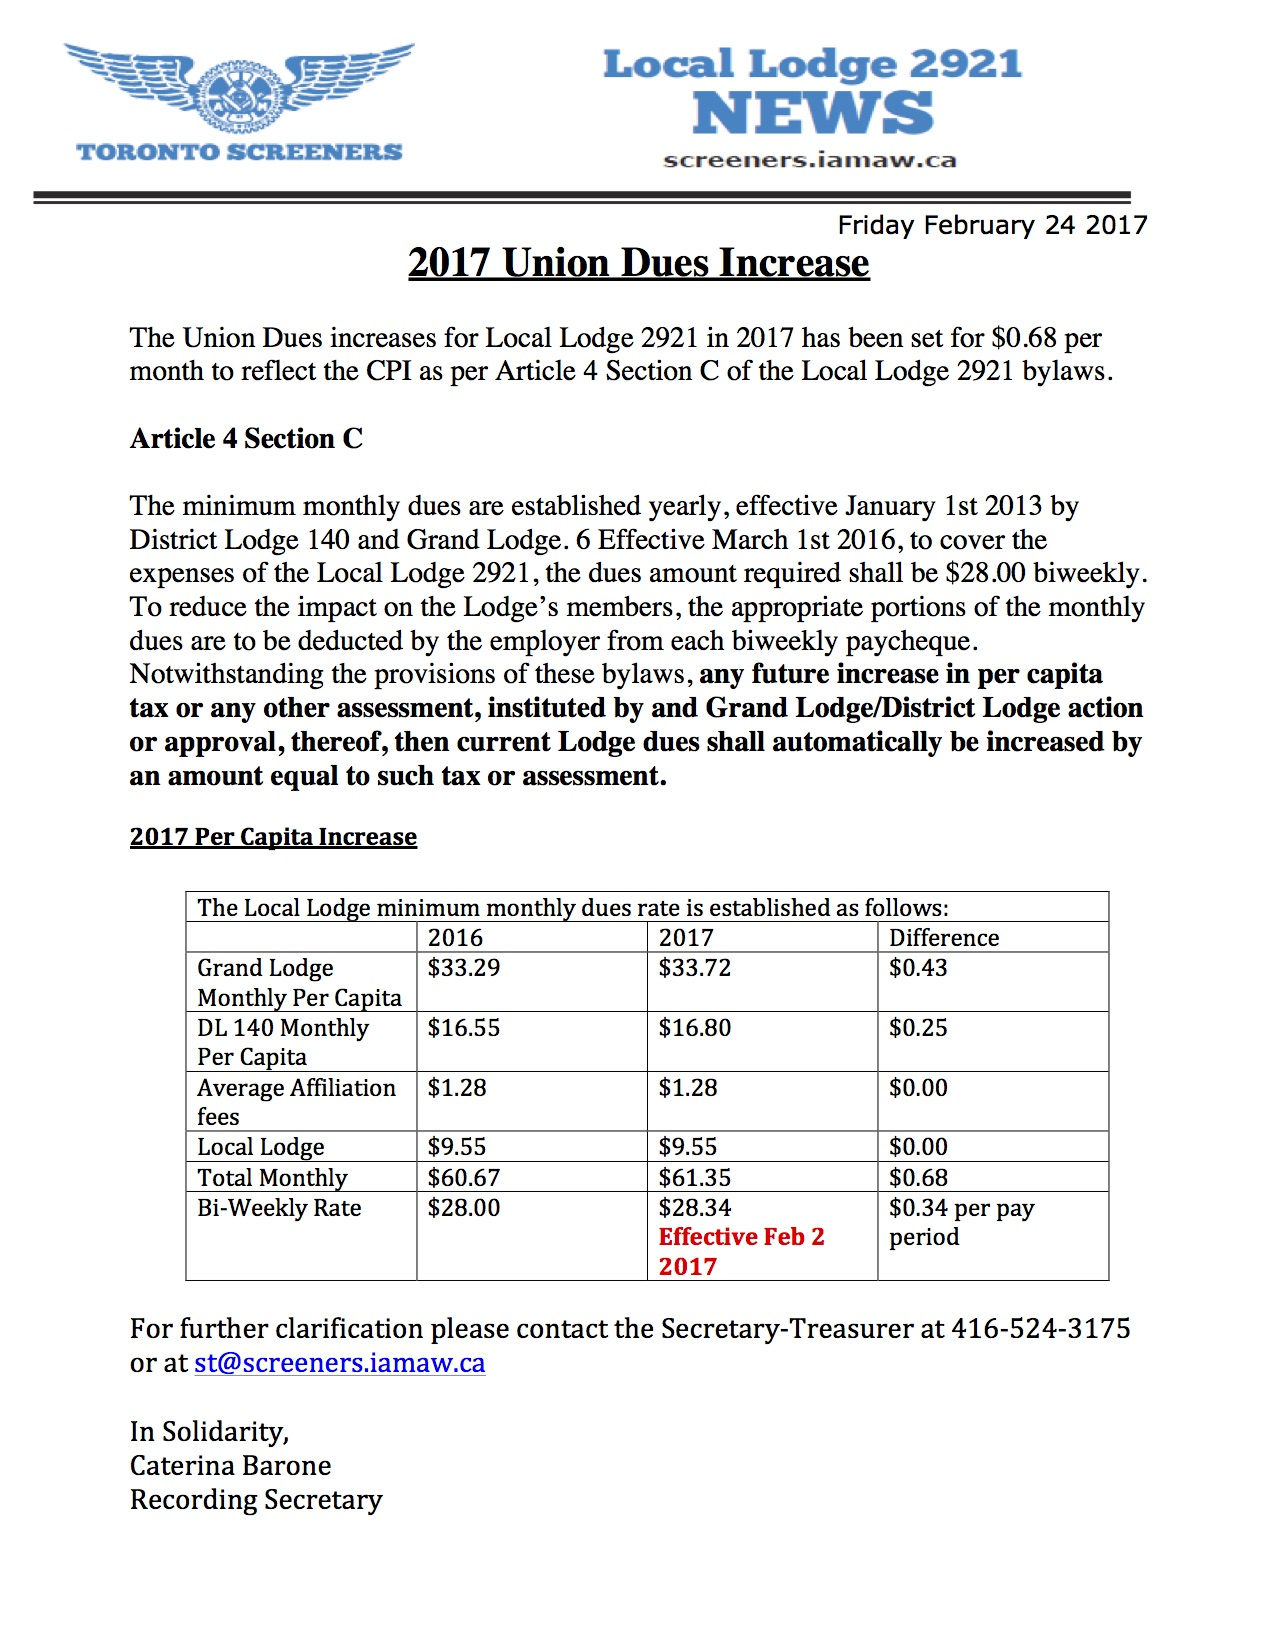 Union Dues increase- 2017